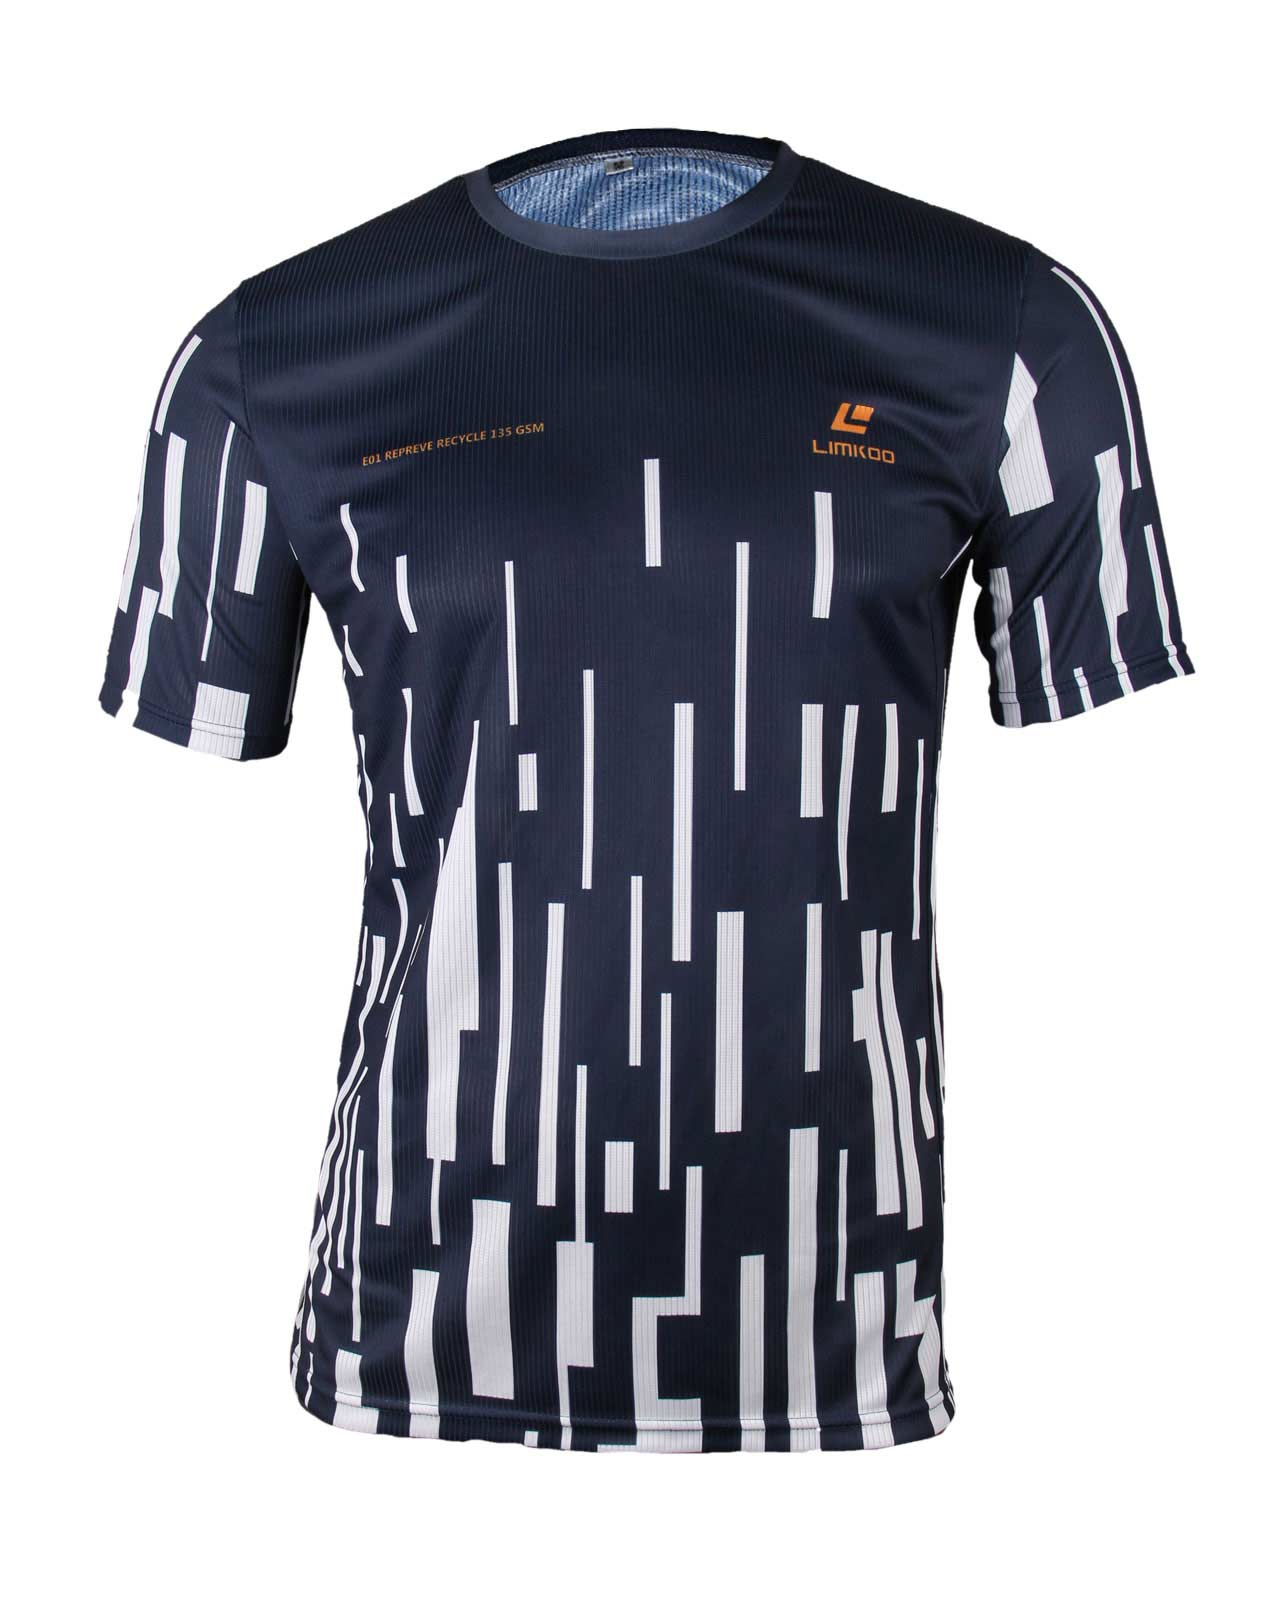 American REPREVE RECYCLE Short Sleeve Running Shirt